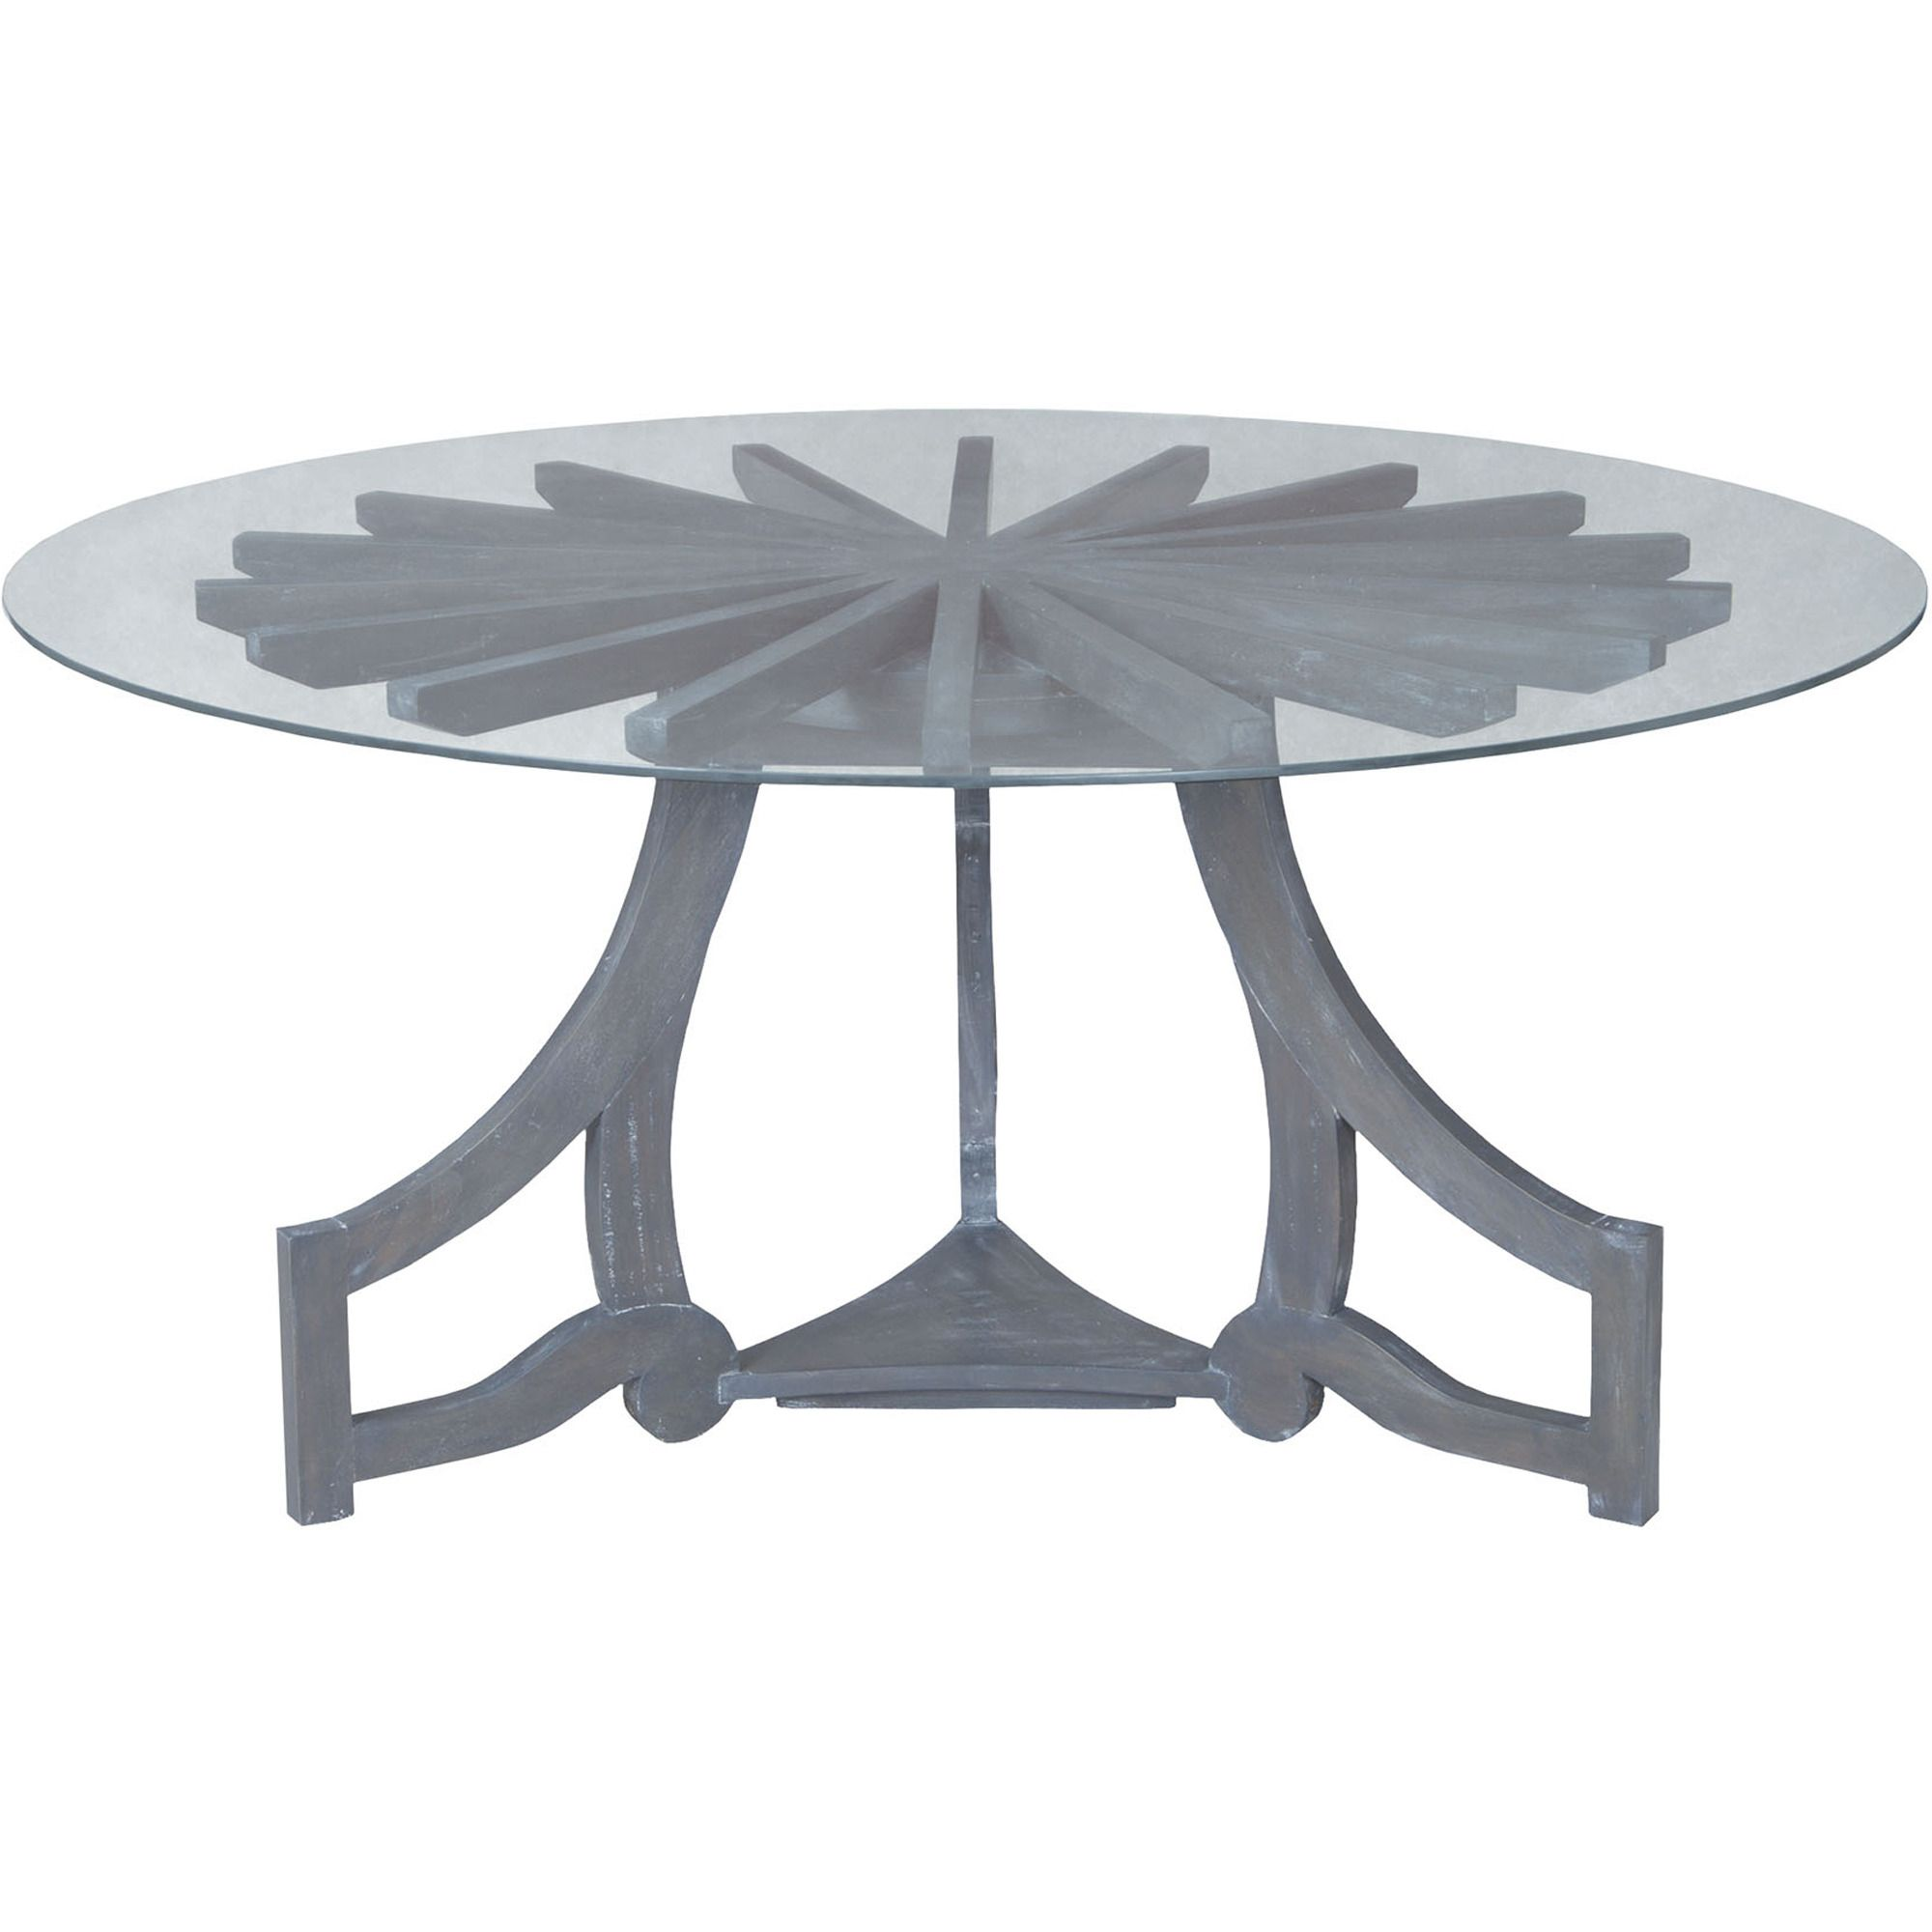 Sunburst Dining Table in Antique Smoke in Gray by Guildmaster - Home Gallery Stores